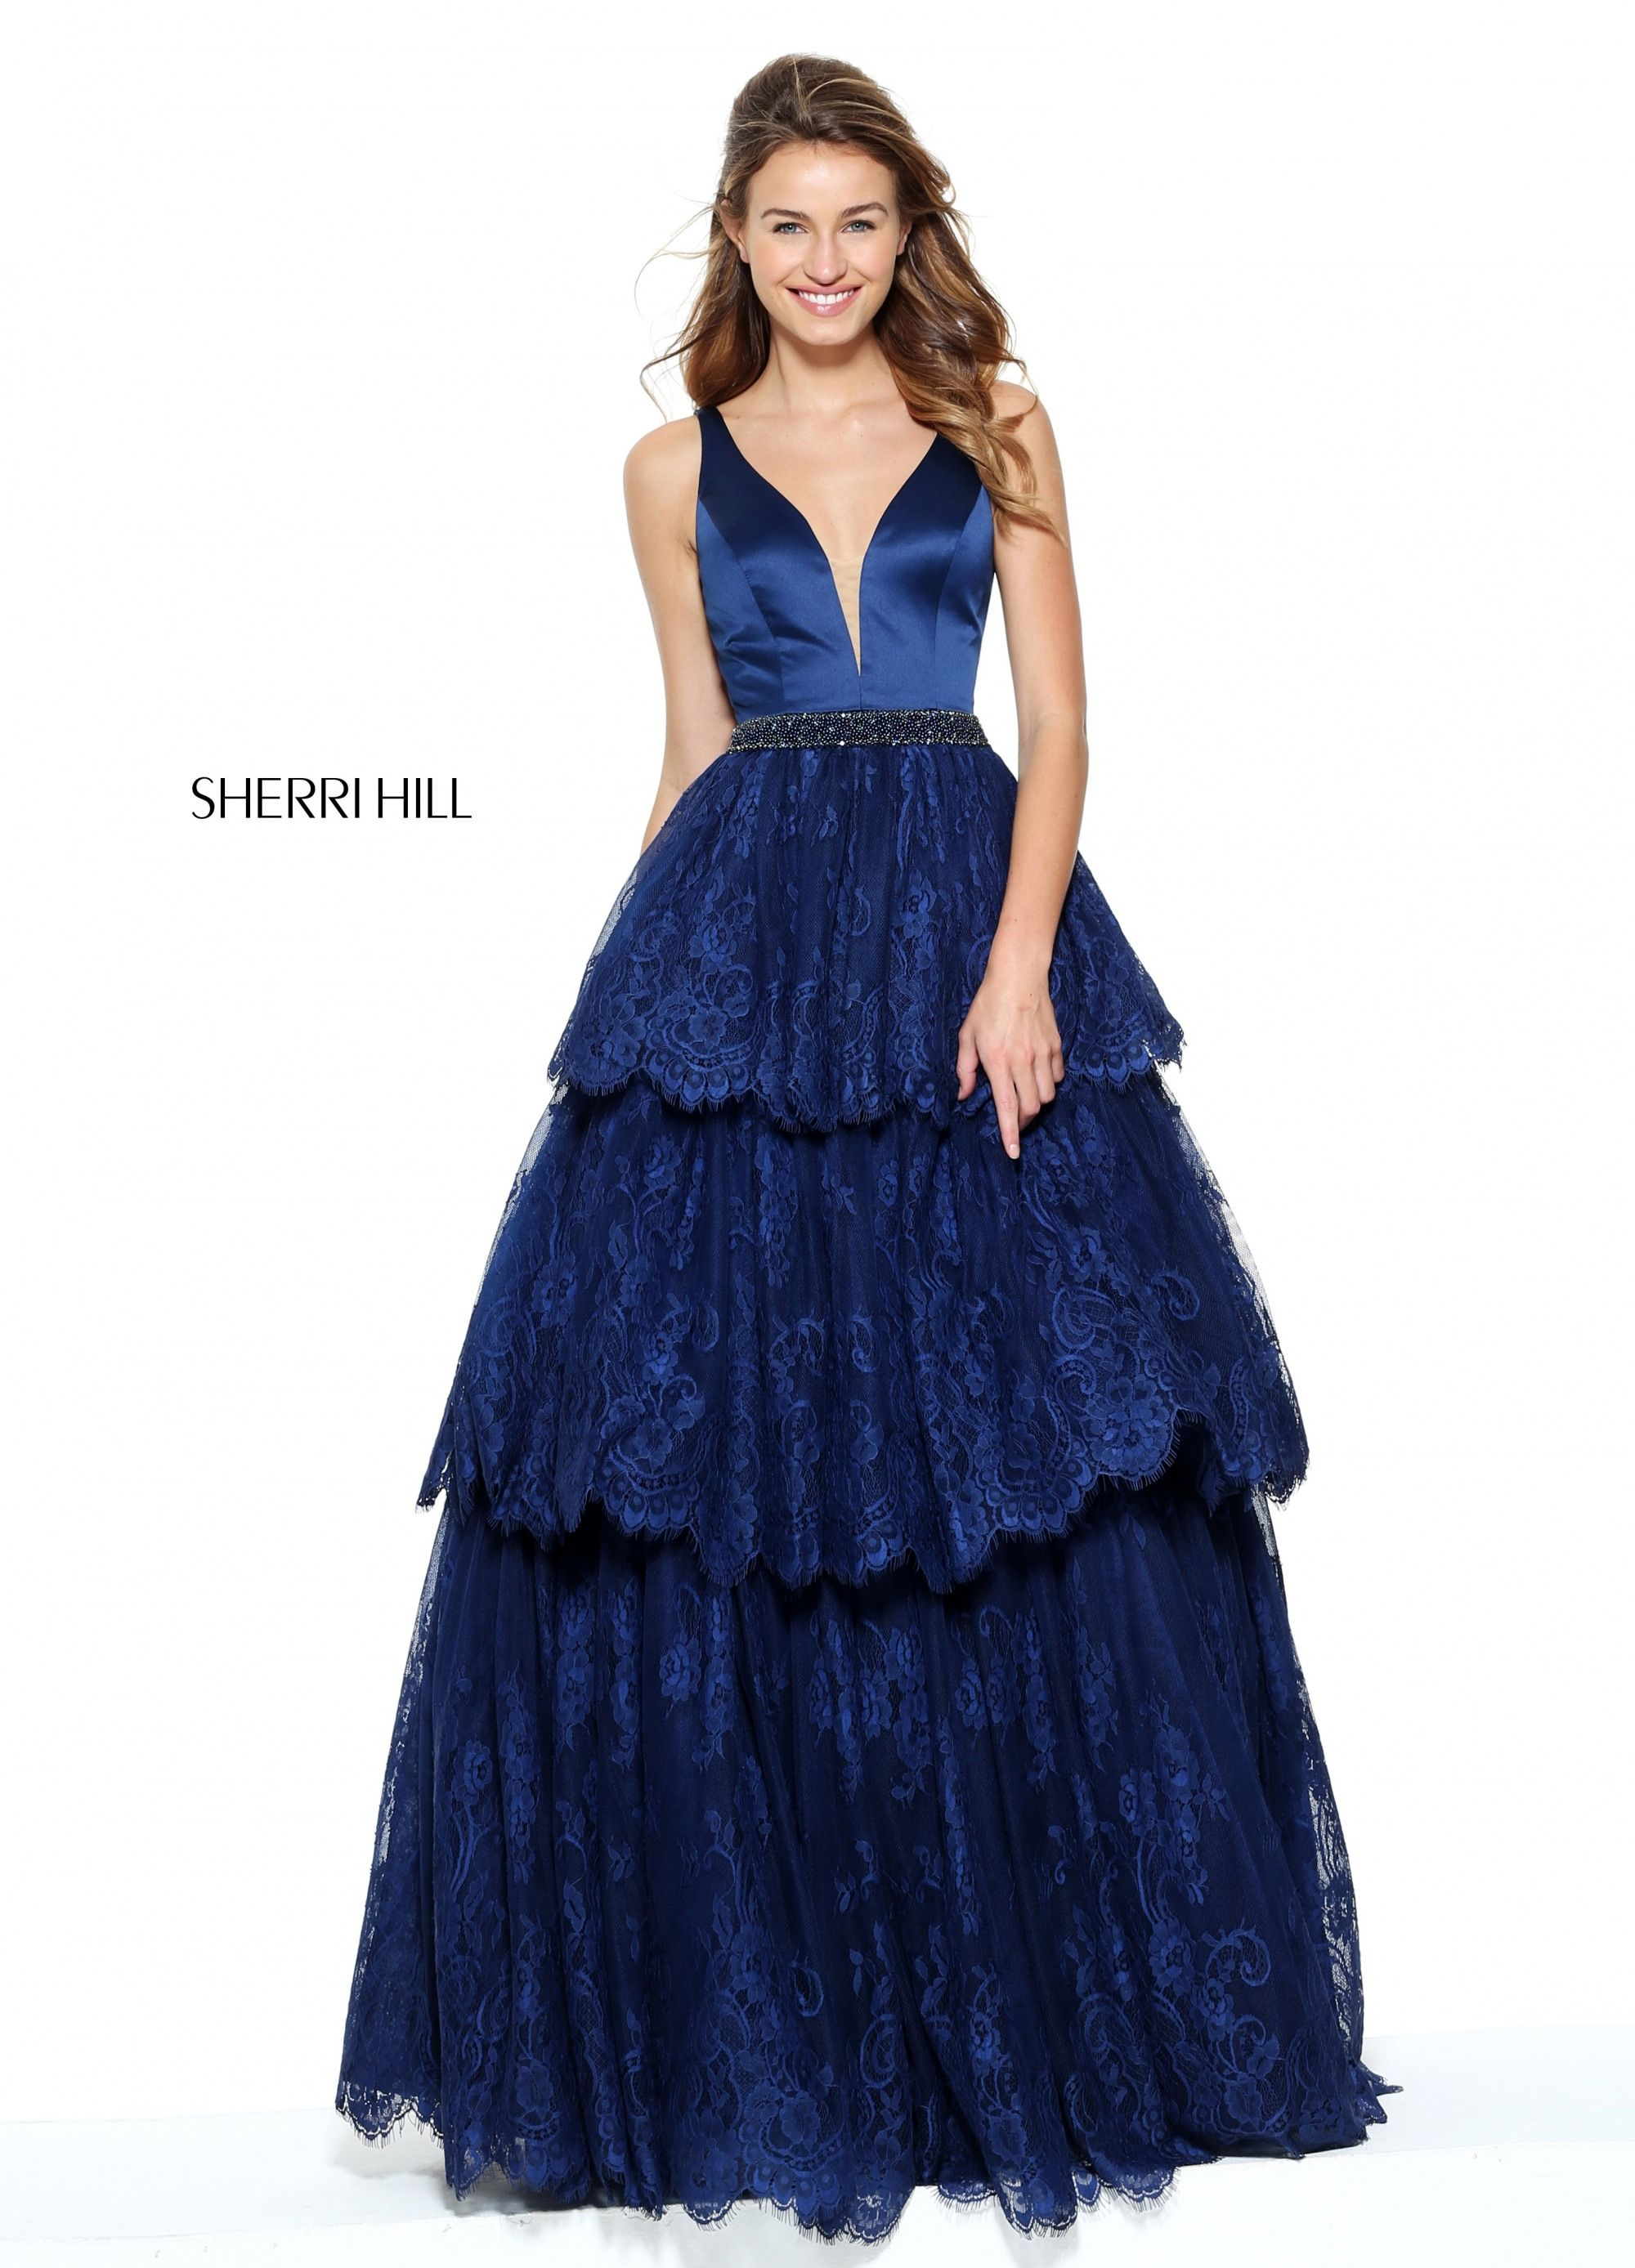 Pin by Wolsfelt\'s Prom on 2017 Prom- Ball Gown | Pinterest | Prom ...